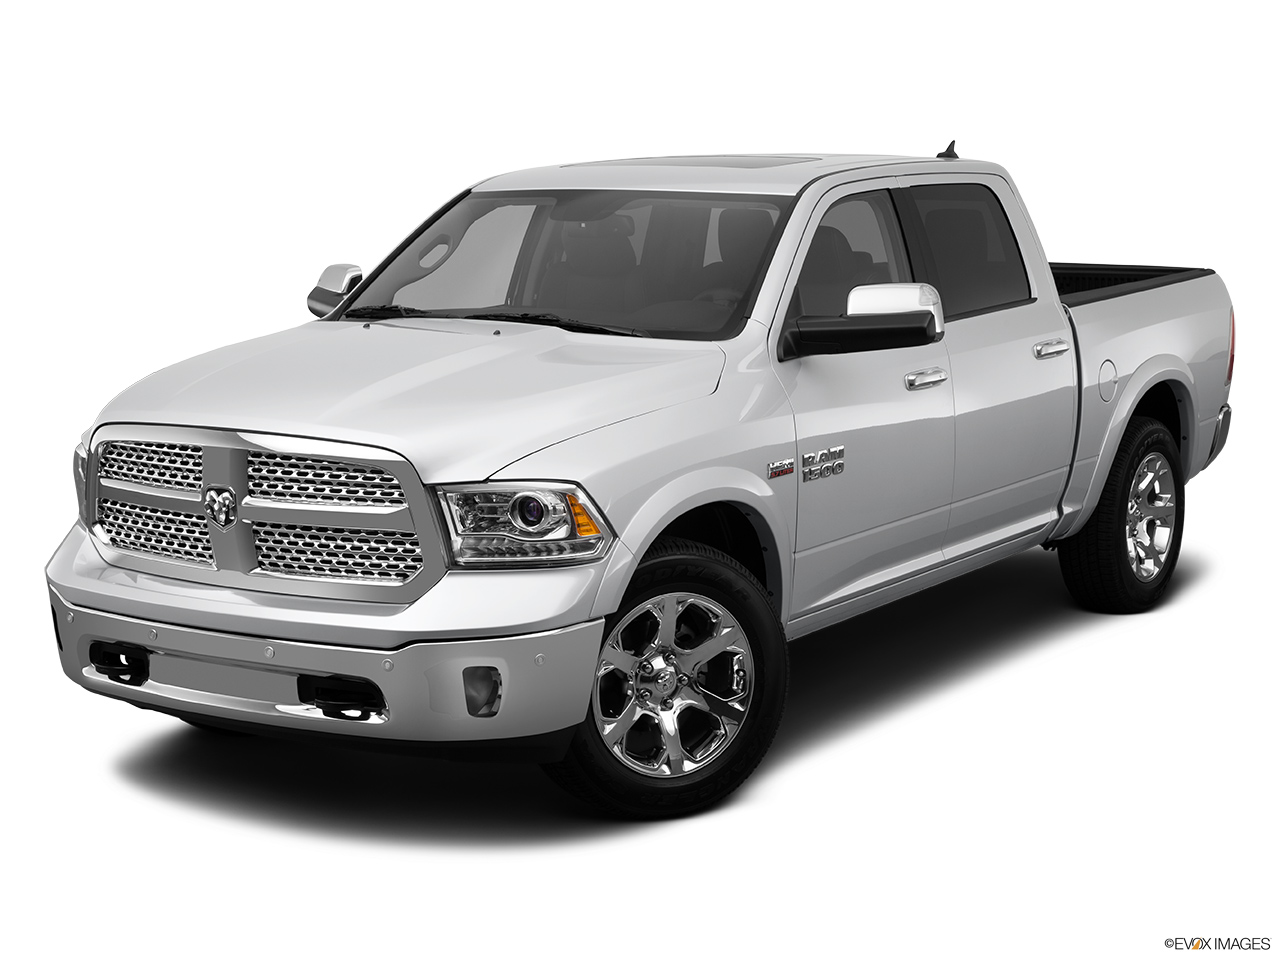 2014 ram 1500 4wd crew cab 140 5 longhorn limited. Black Bedroom Furniture Sets. Home Design Ideas